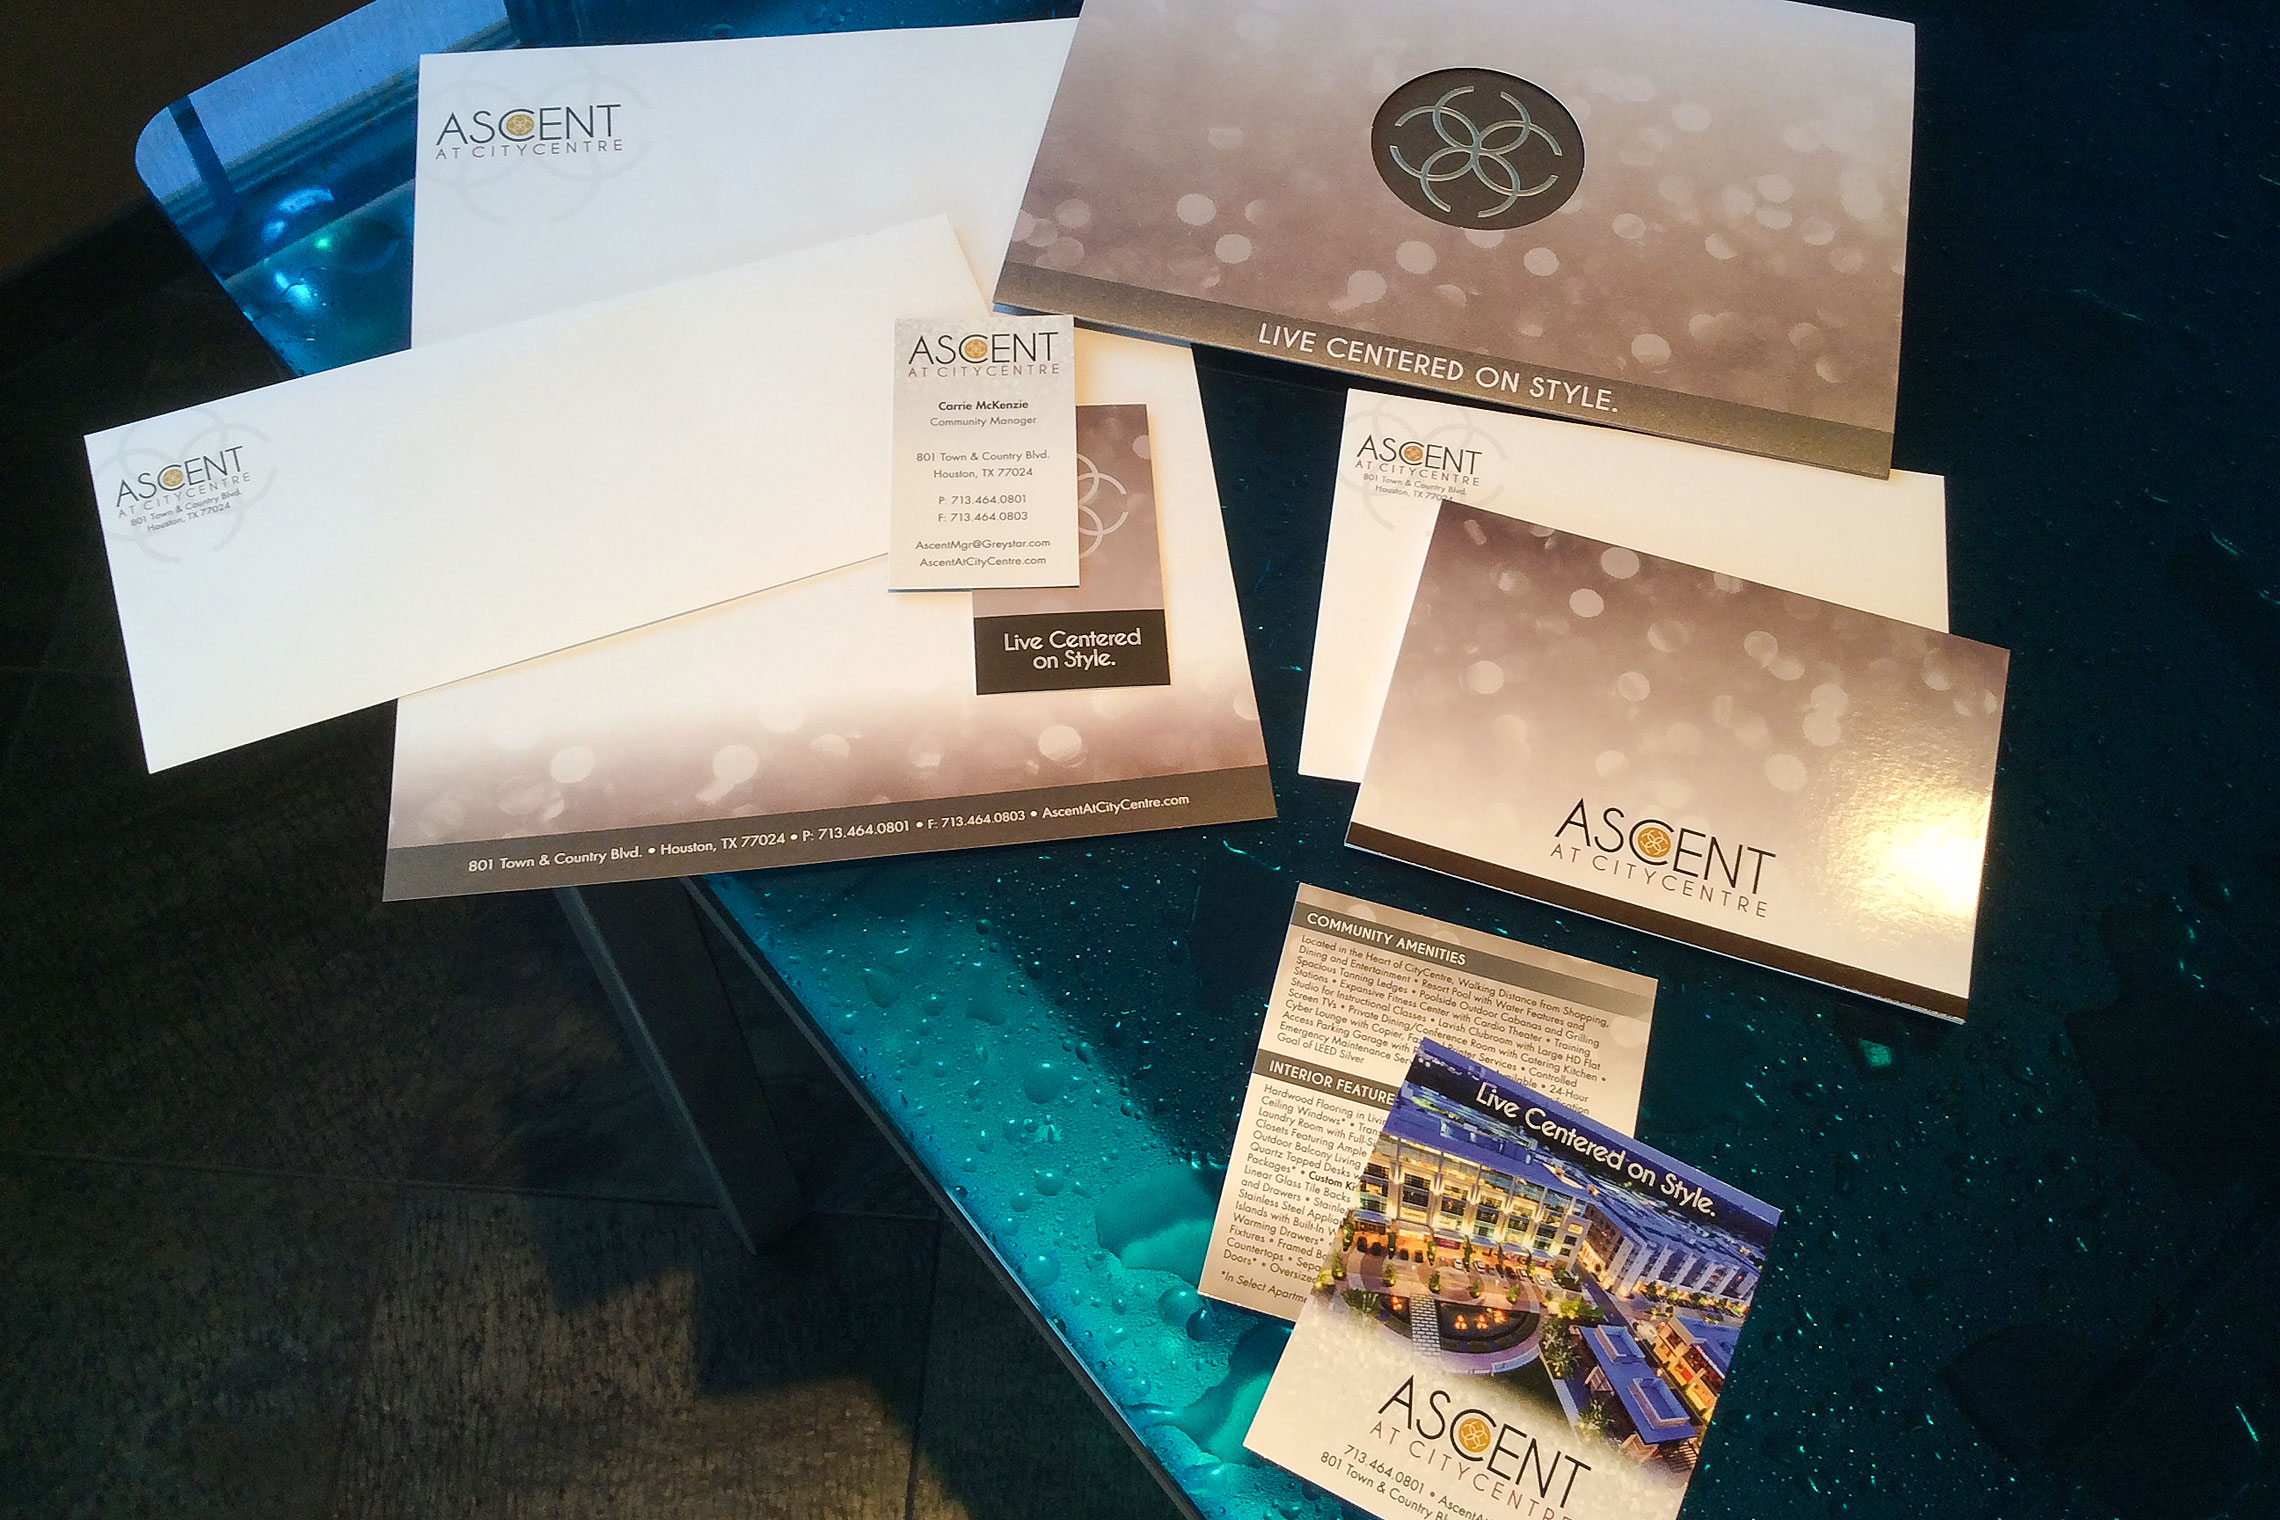 Ascent at CITYCENTRE Collateral - Brochure, Thank You Card, Promo Card, Business Card, Letterhead and Envelope